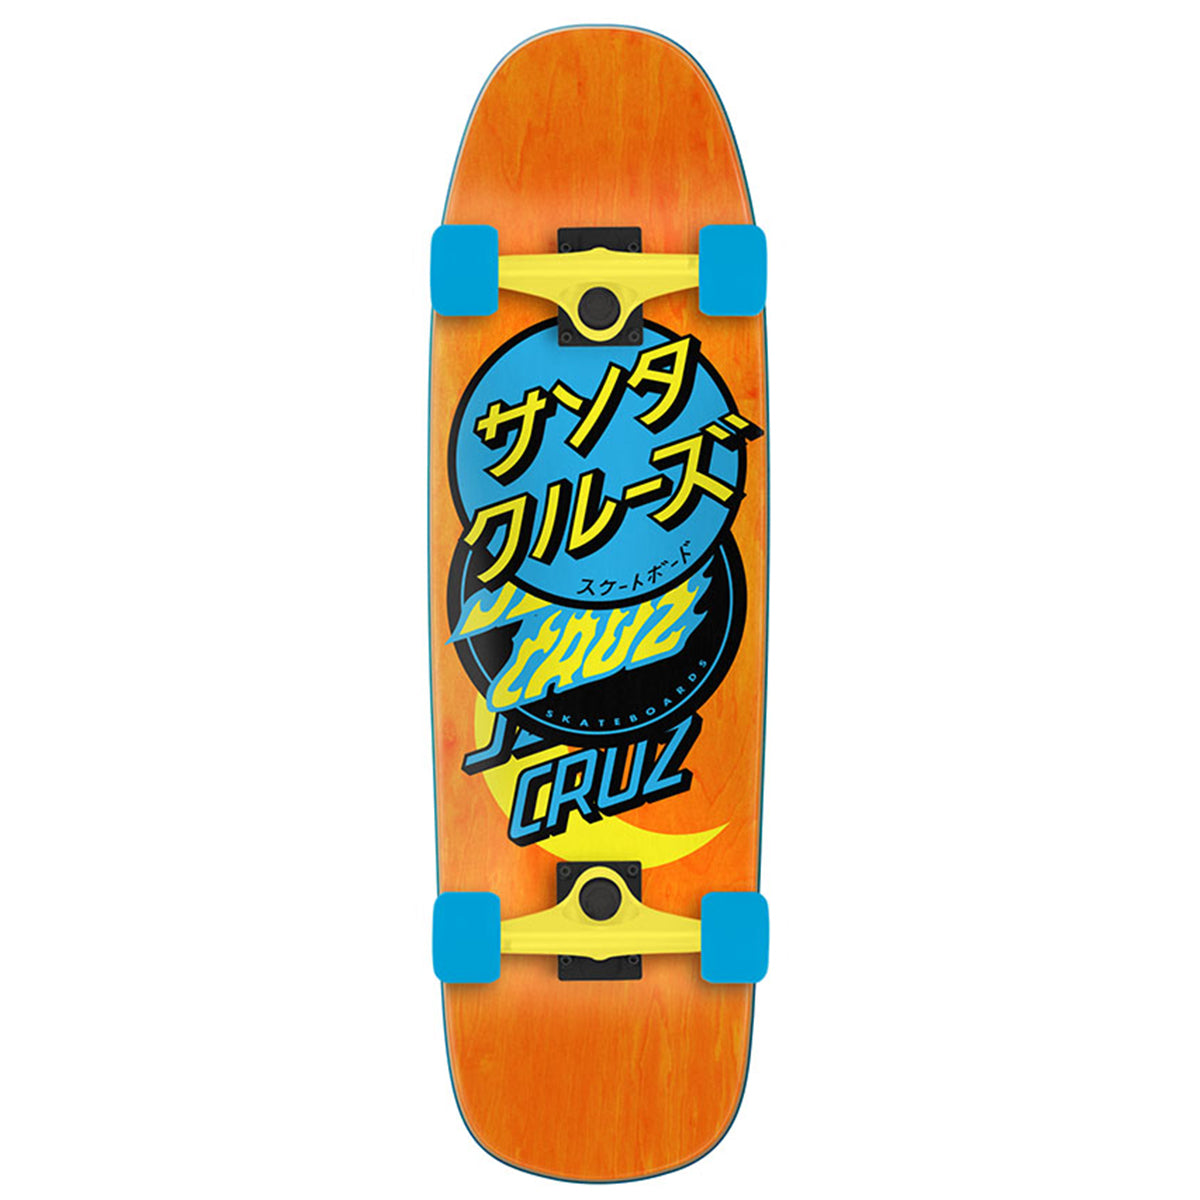 Santa Cruz 80's Cruiser - Group Dot | Underground Skate Shop